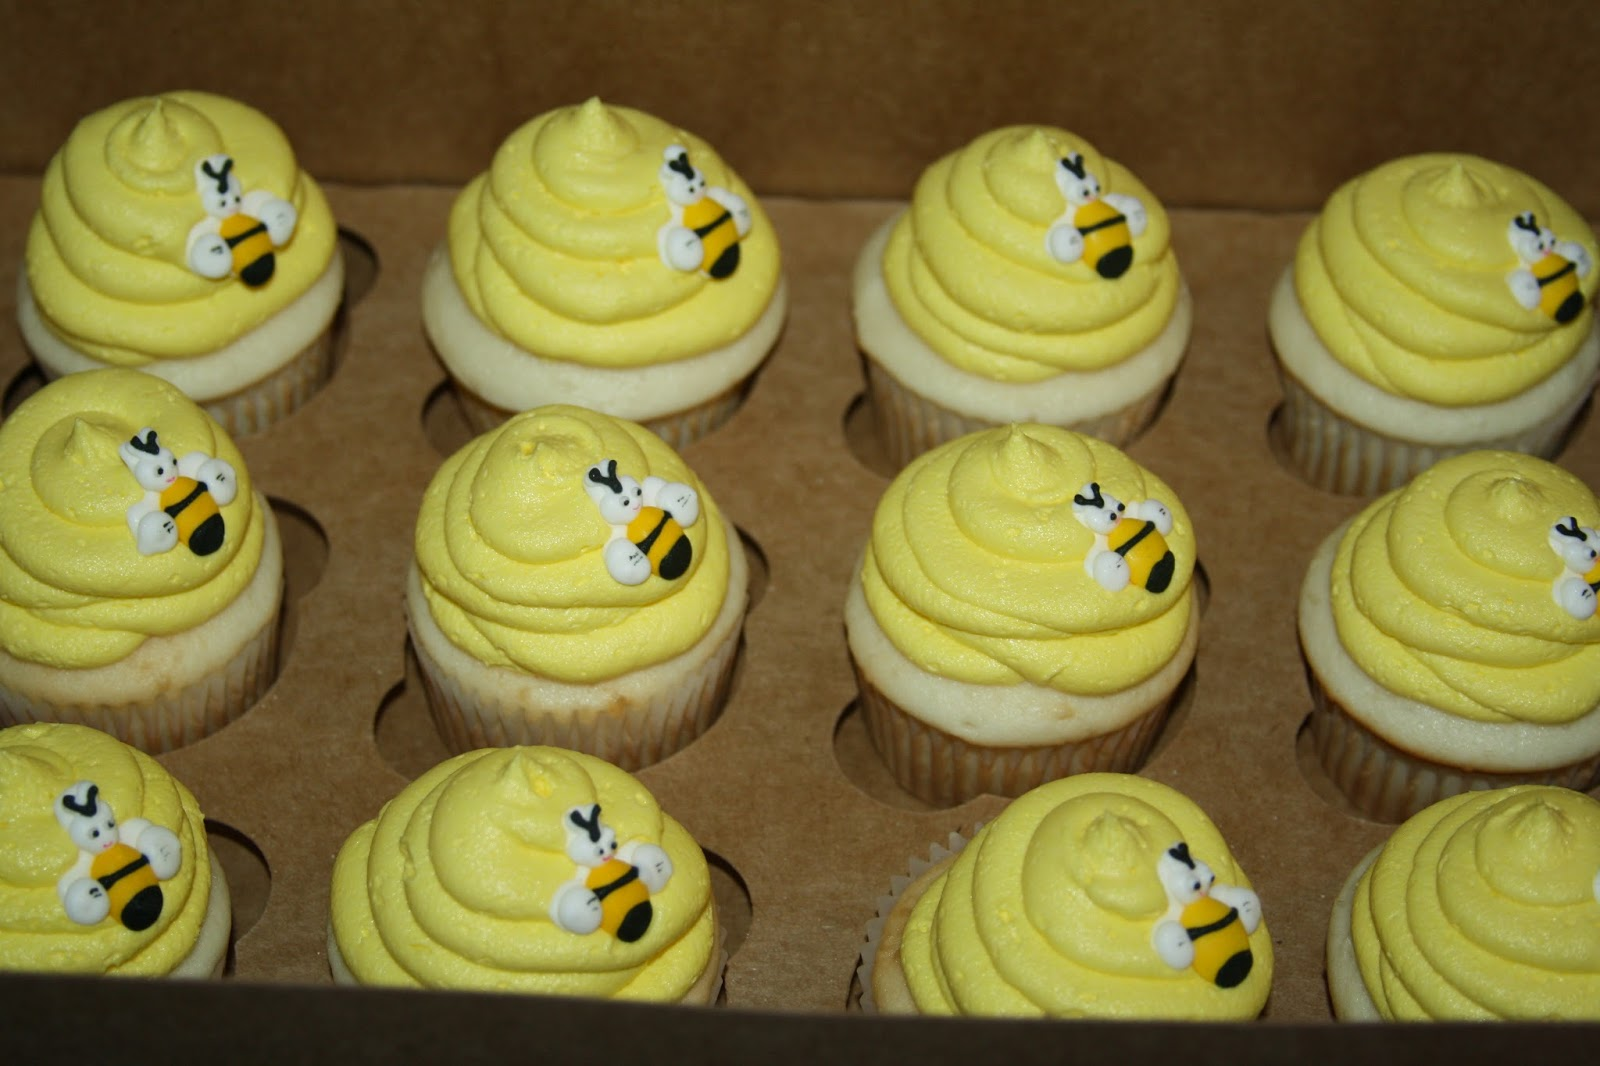 These Bumble Bees Were Handmade By Me I Think They Came Out Pretty Darn Cute